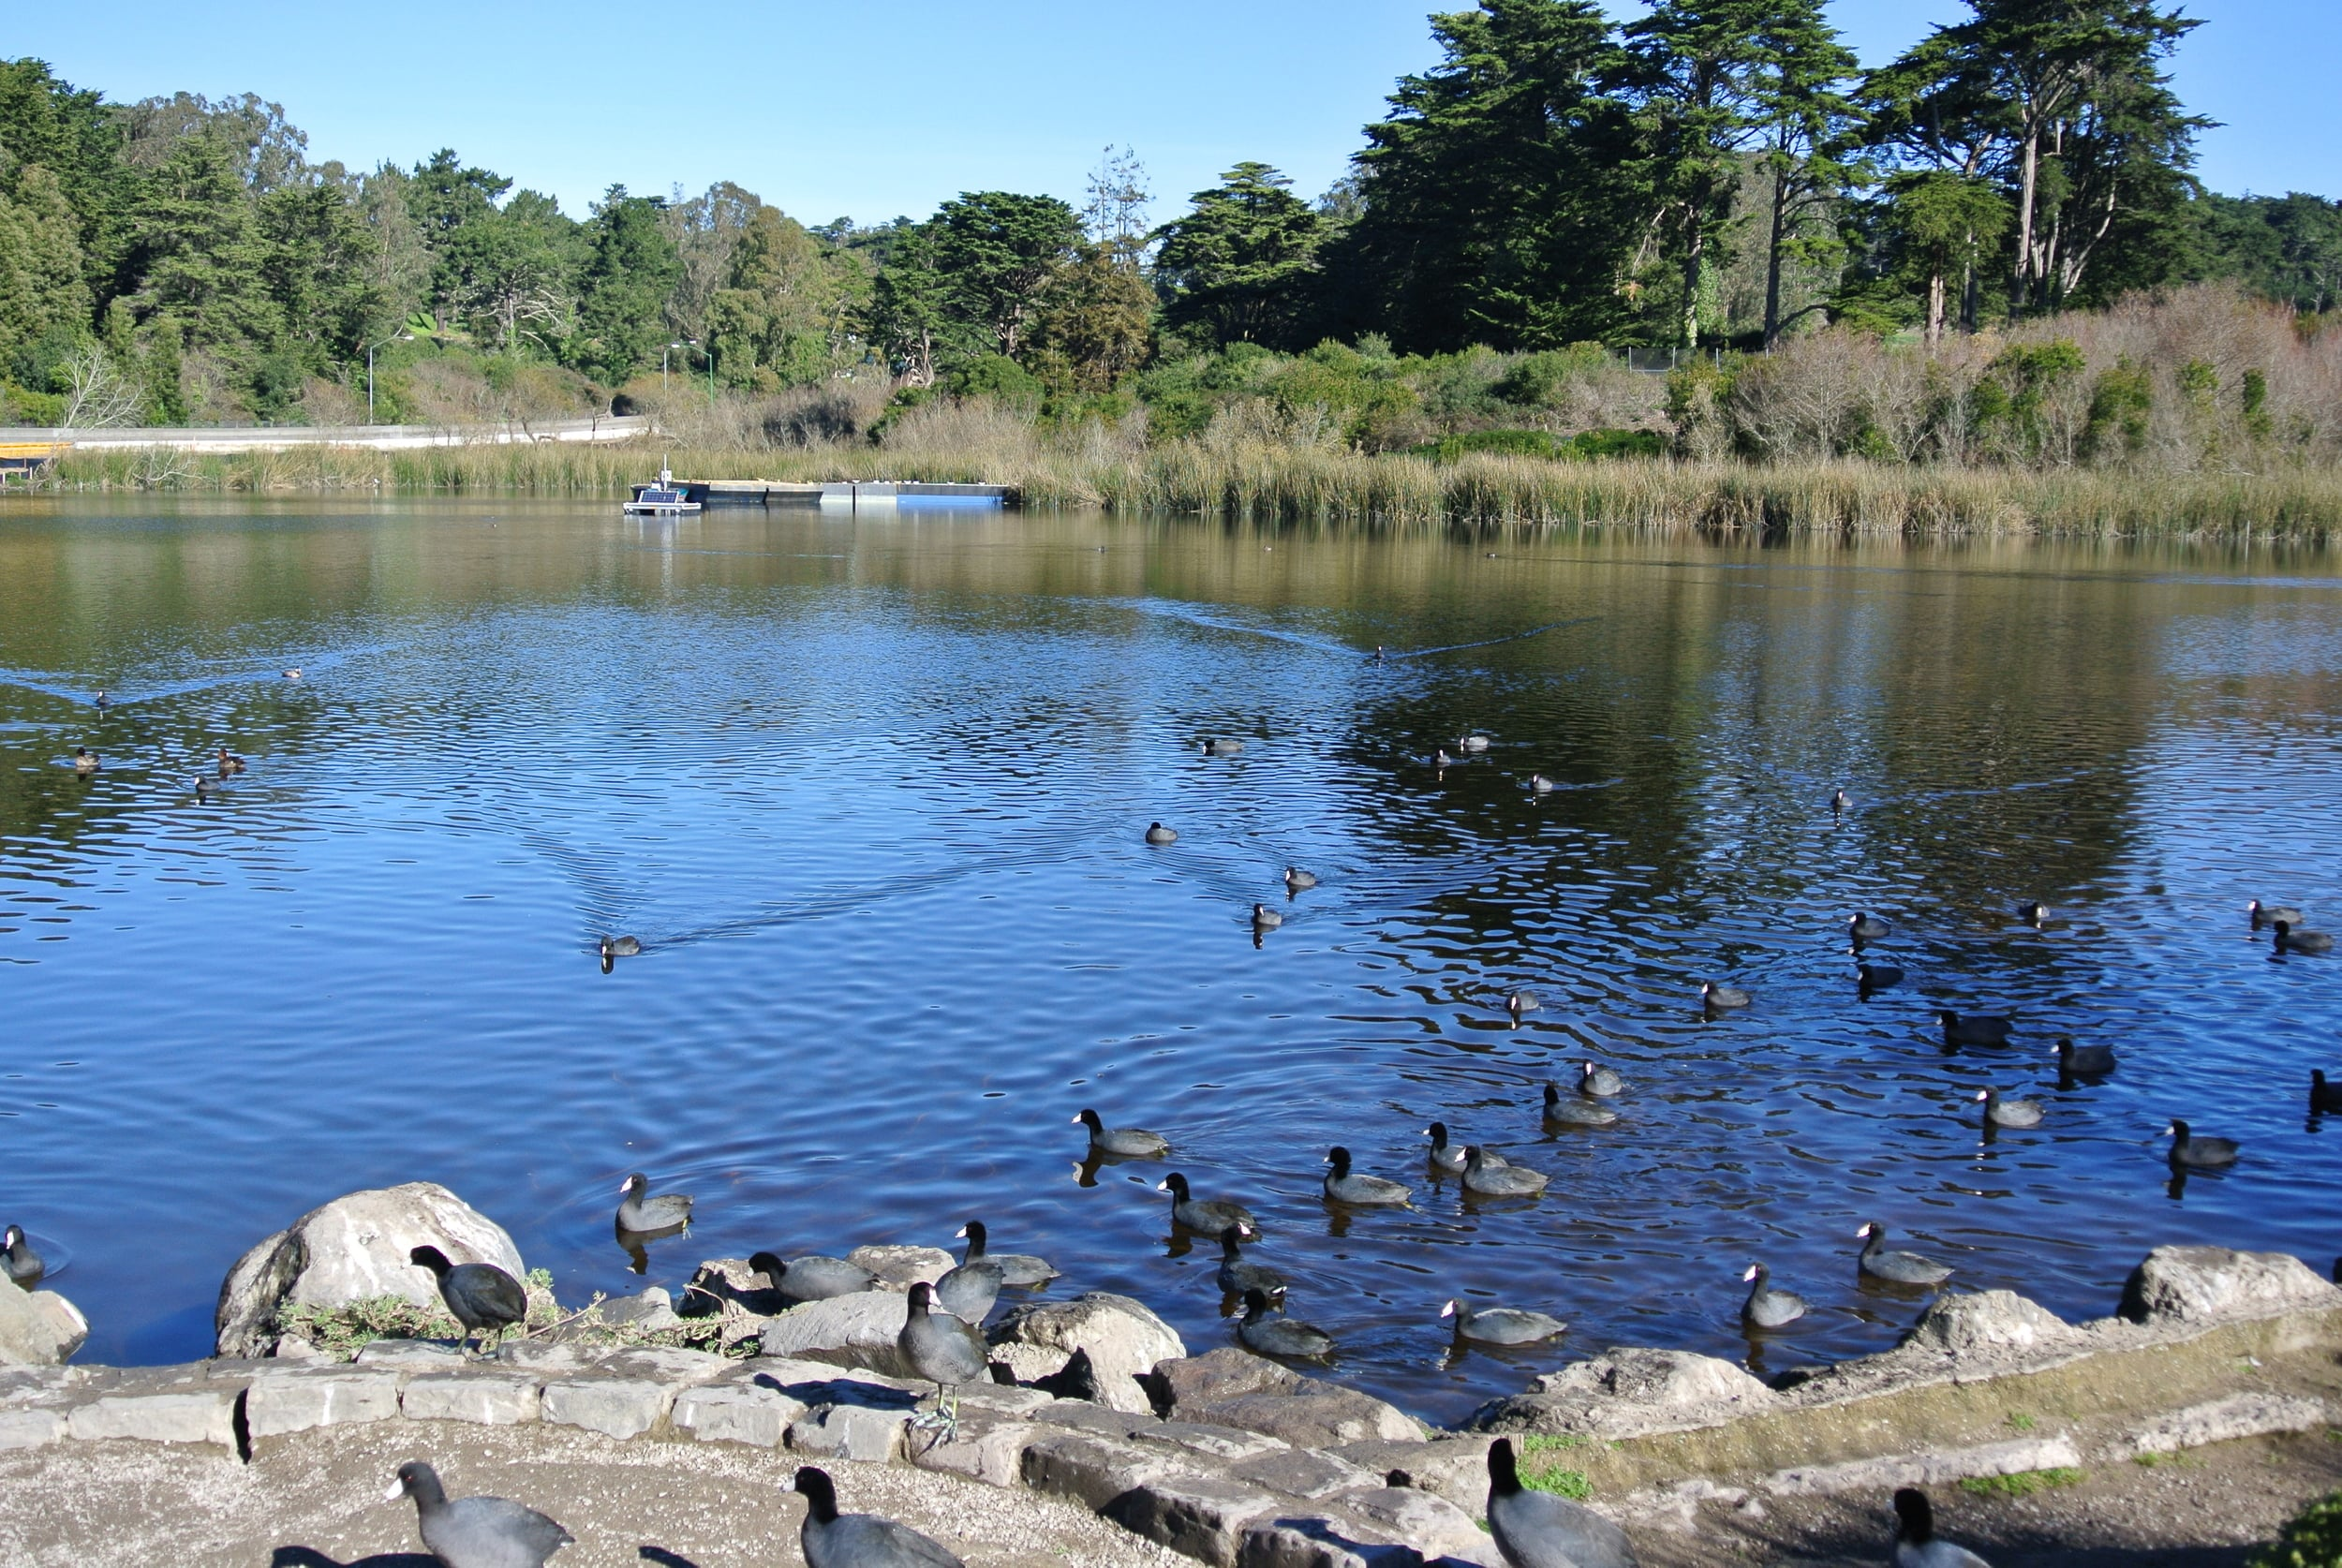 Mountain Lake Park features a playground, dog park, duck pond and tennis courts, not to mention easy access to Presidio national park.